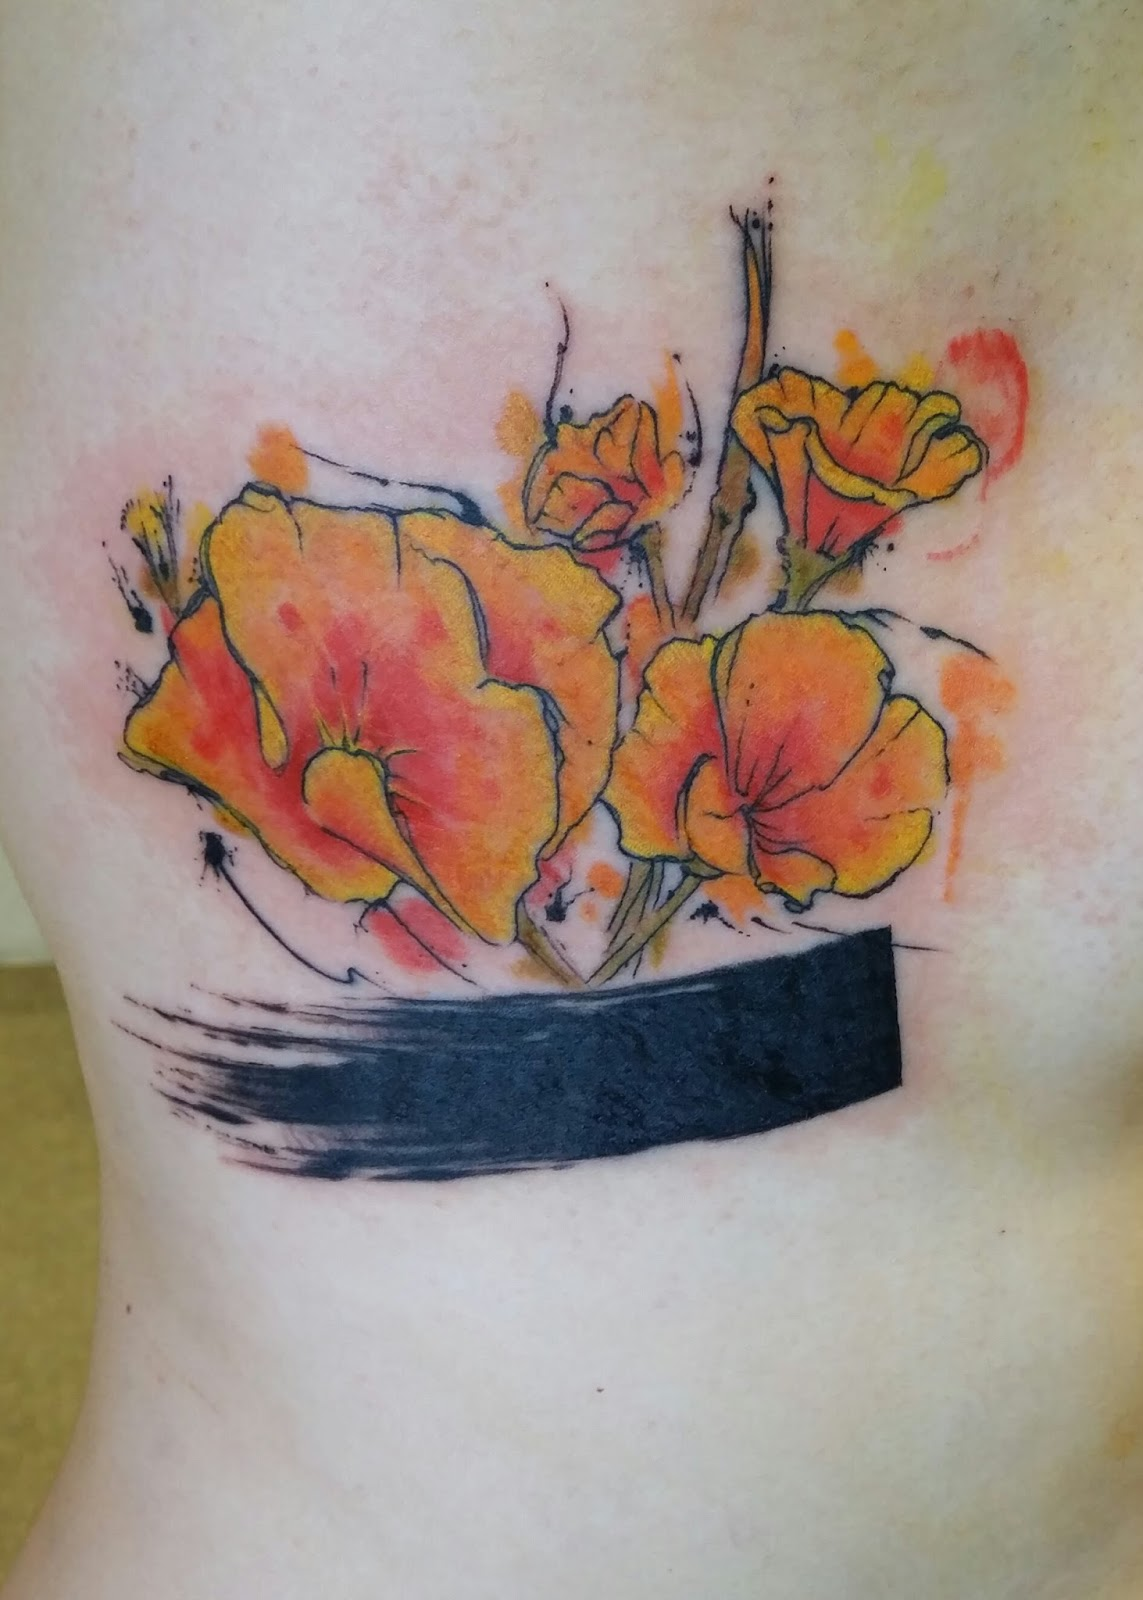 Awesome inks tattoo ideas inspiration and information for Watercolor poppy tattoo